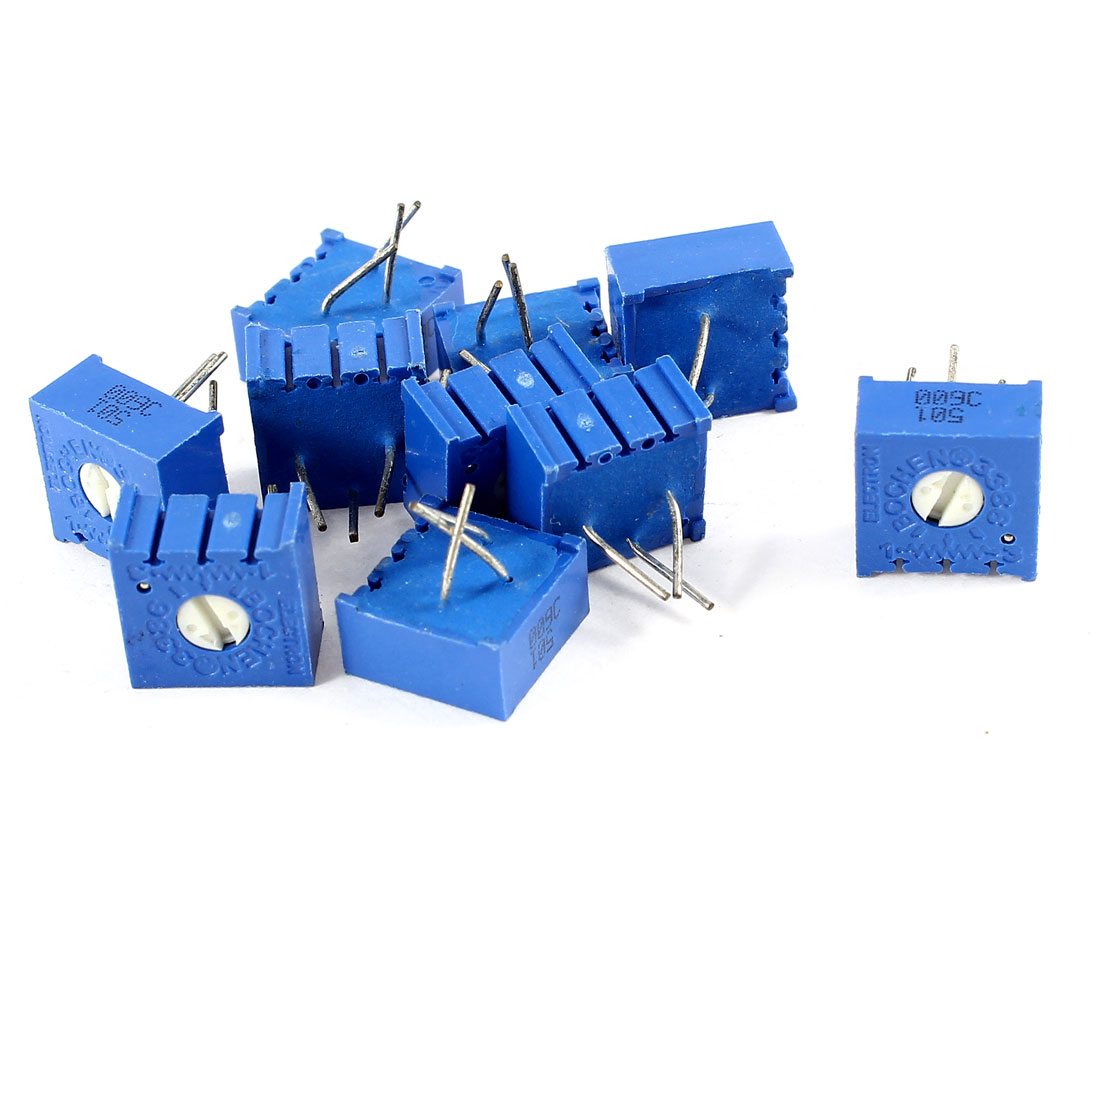 10Pcs 3386W-501 500 ohm 3 Pins High Precision Adjustable Square Resistor Trim Pot Potentiometer Trimmer